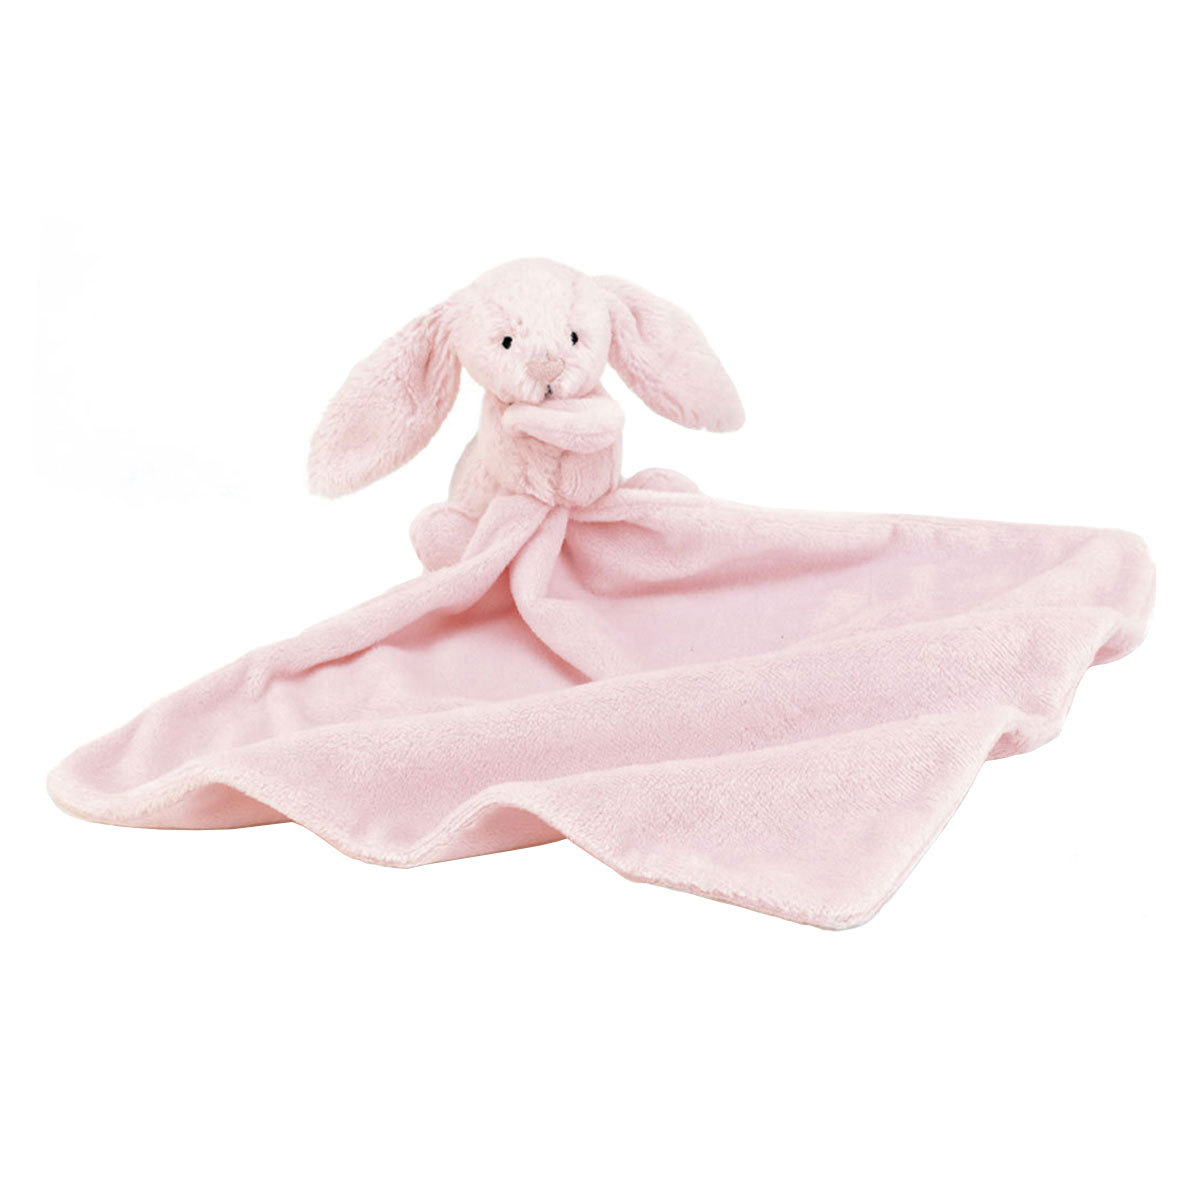 Doudou Bashful Pink Bunny Soother Bashful Pink Bunny Soother